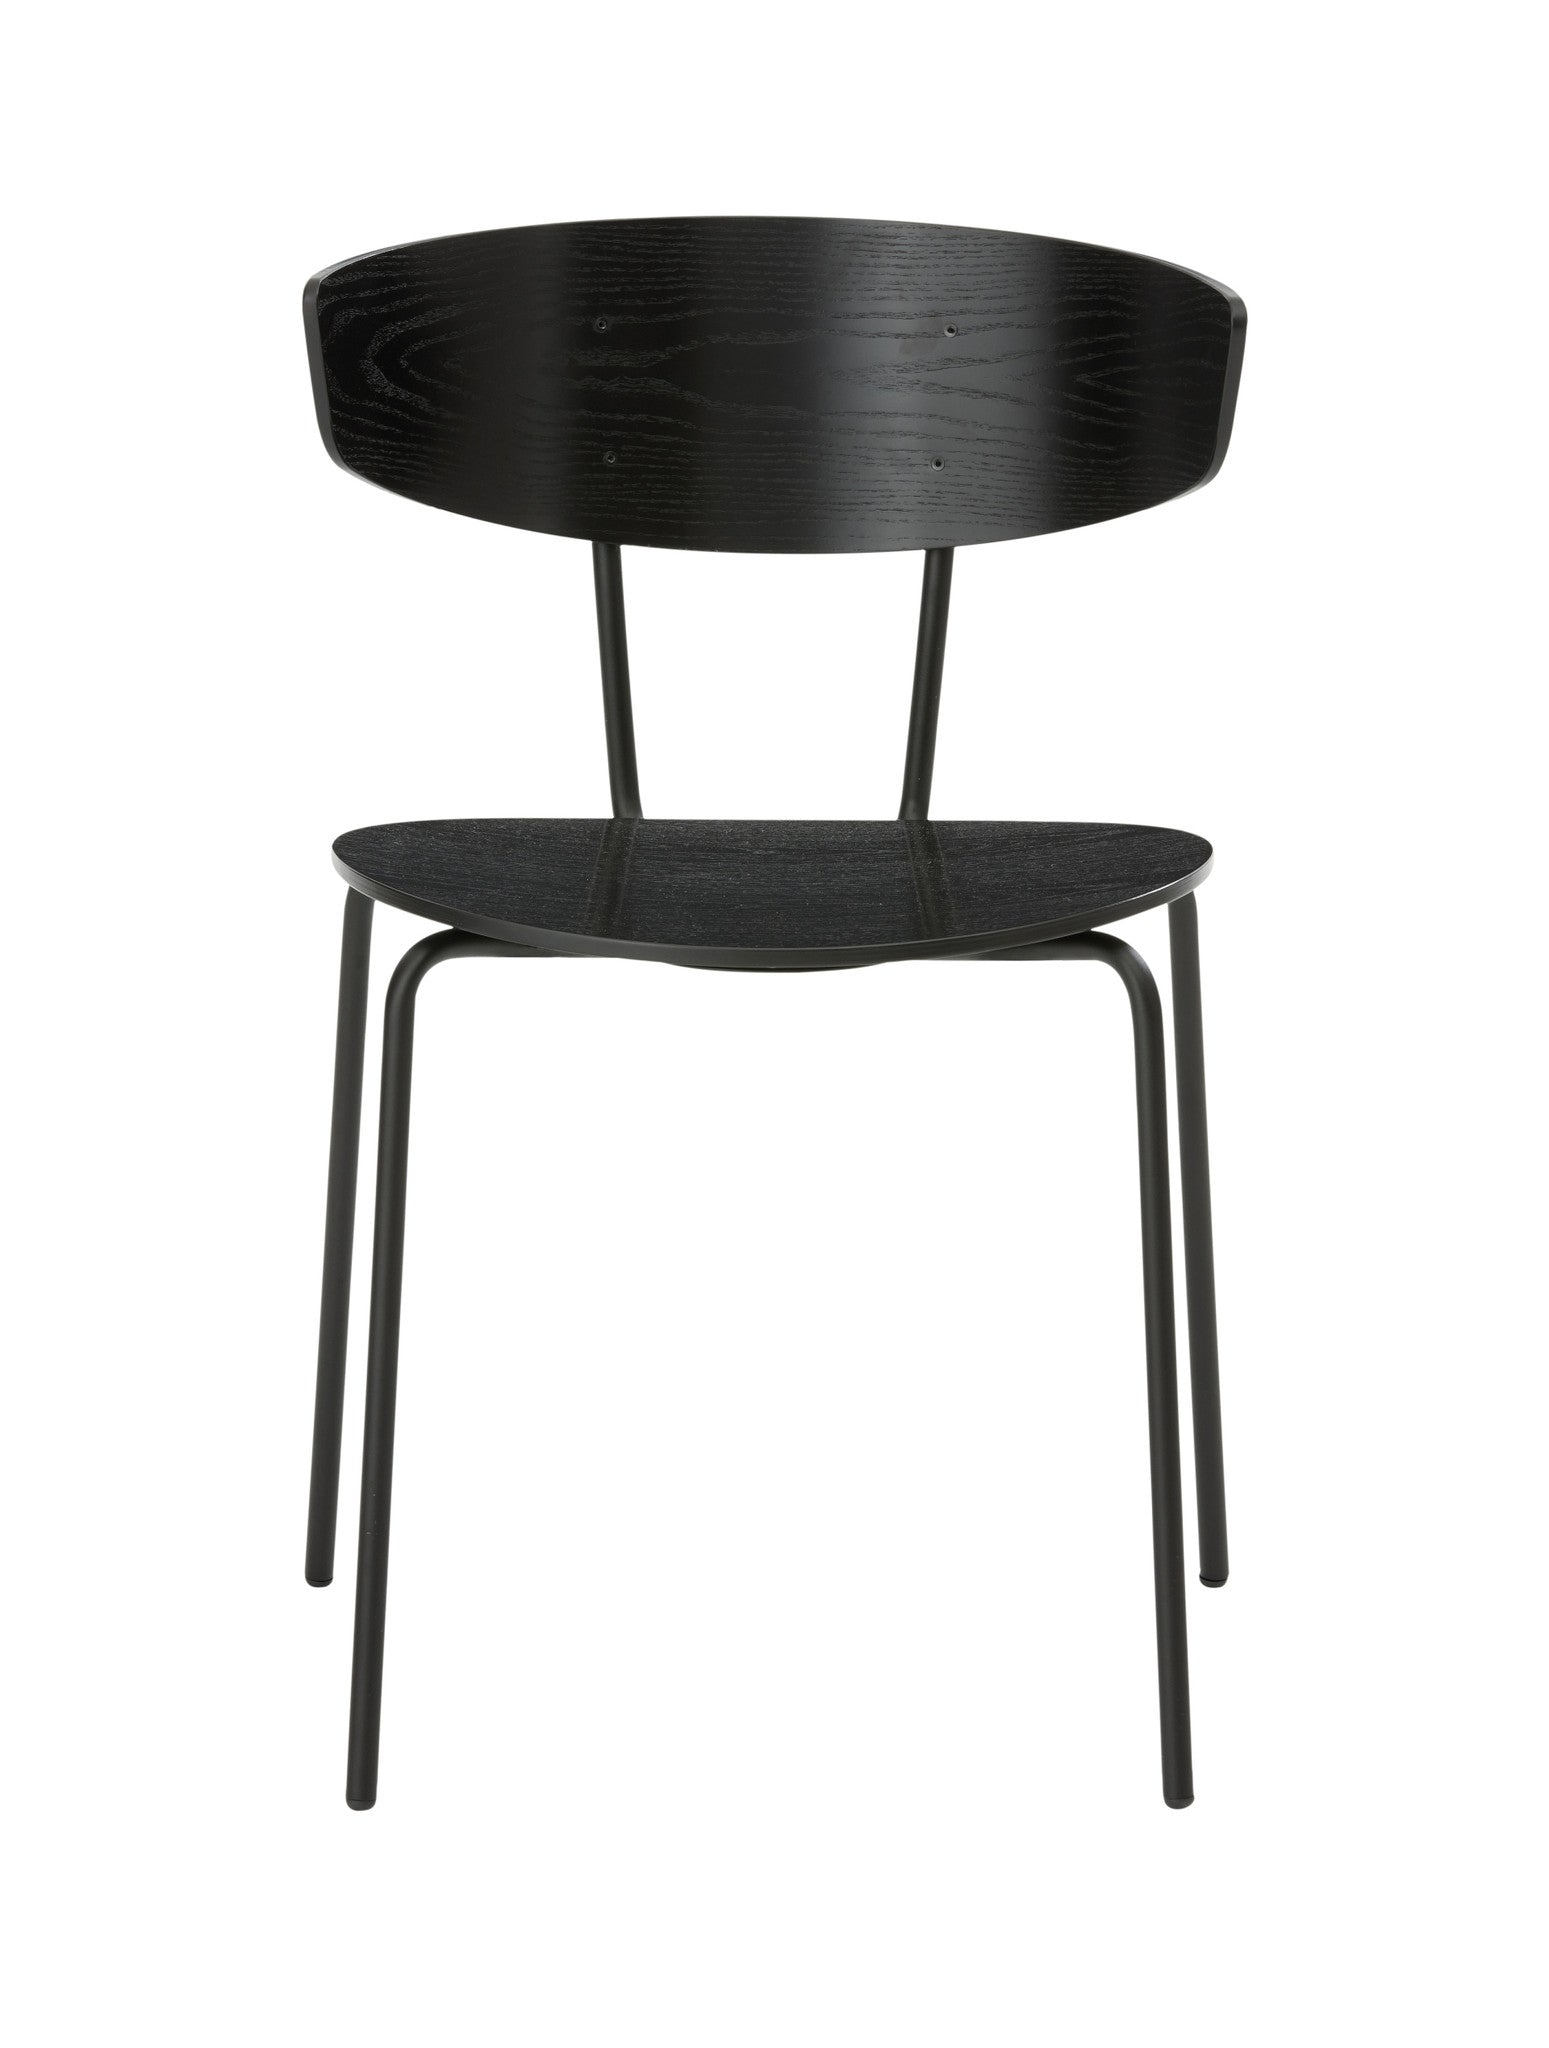 Herman Chair in Black design by Ferm Living – BURKE DECOR